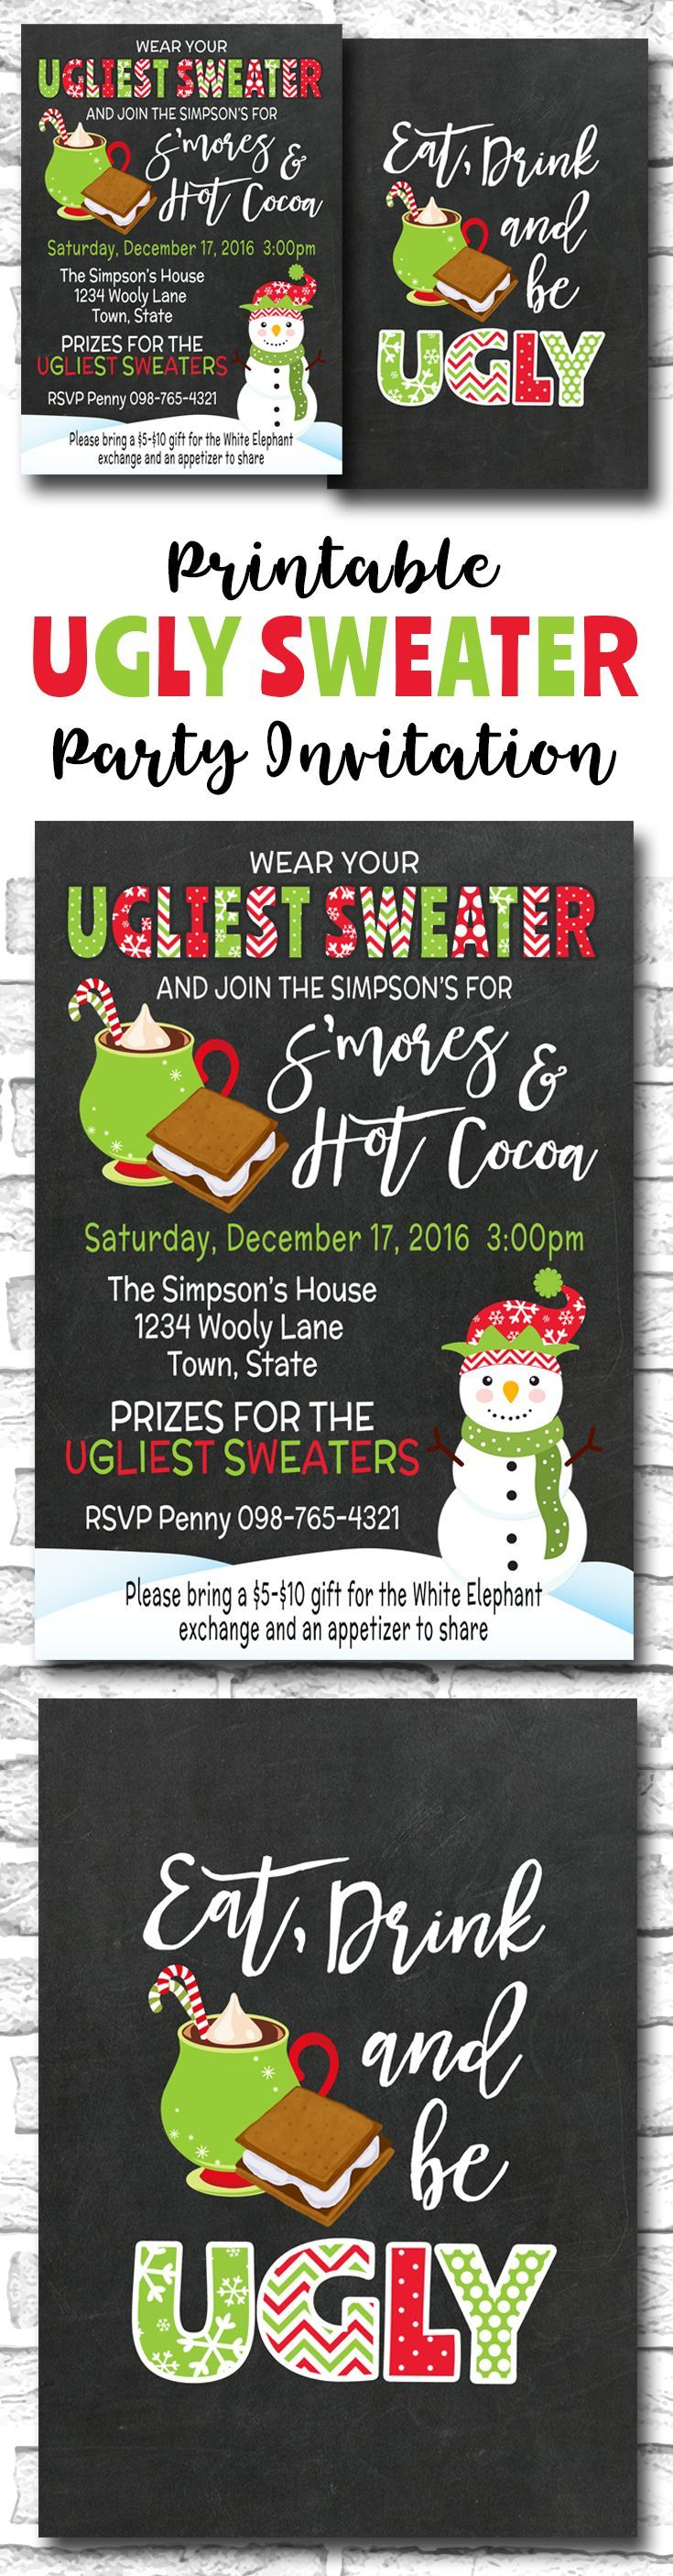 Ugly Sweater Christmas Party Invitation, Smores And Hot Cocoa Holiday Party, Eat Drink And Be Ugly, PRINTABLE Ugly Sweater Invite